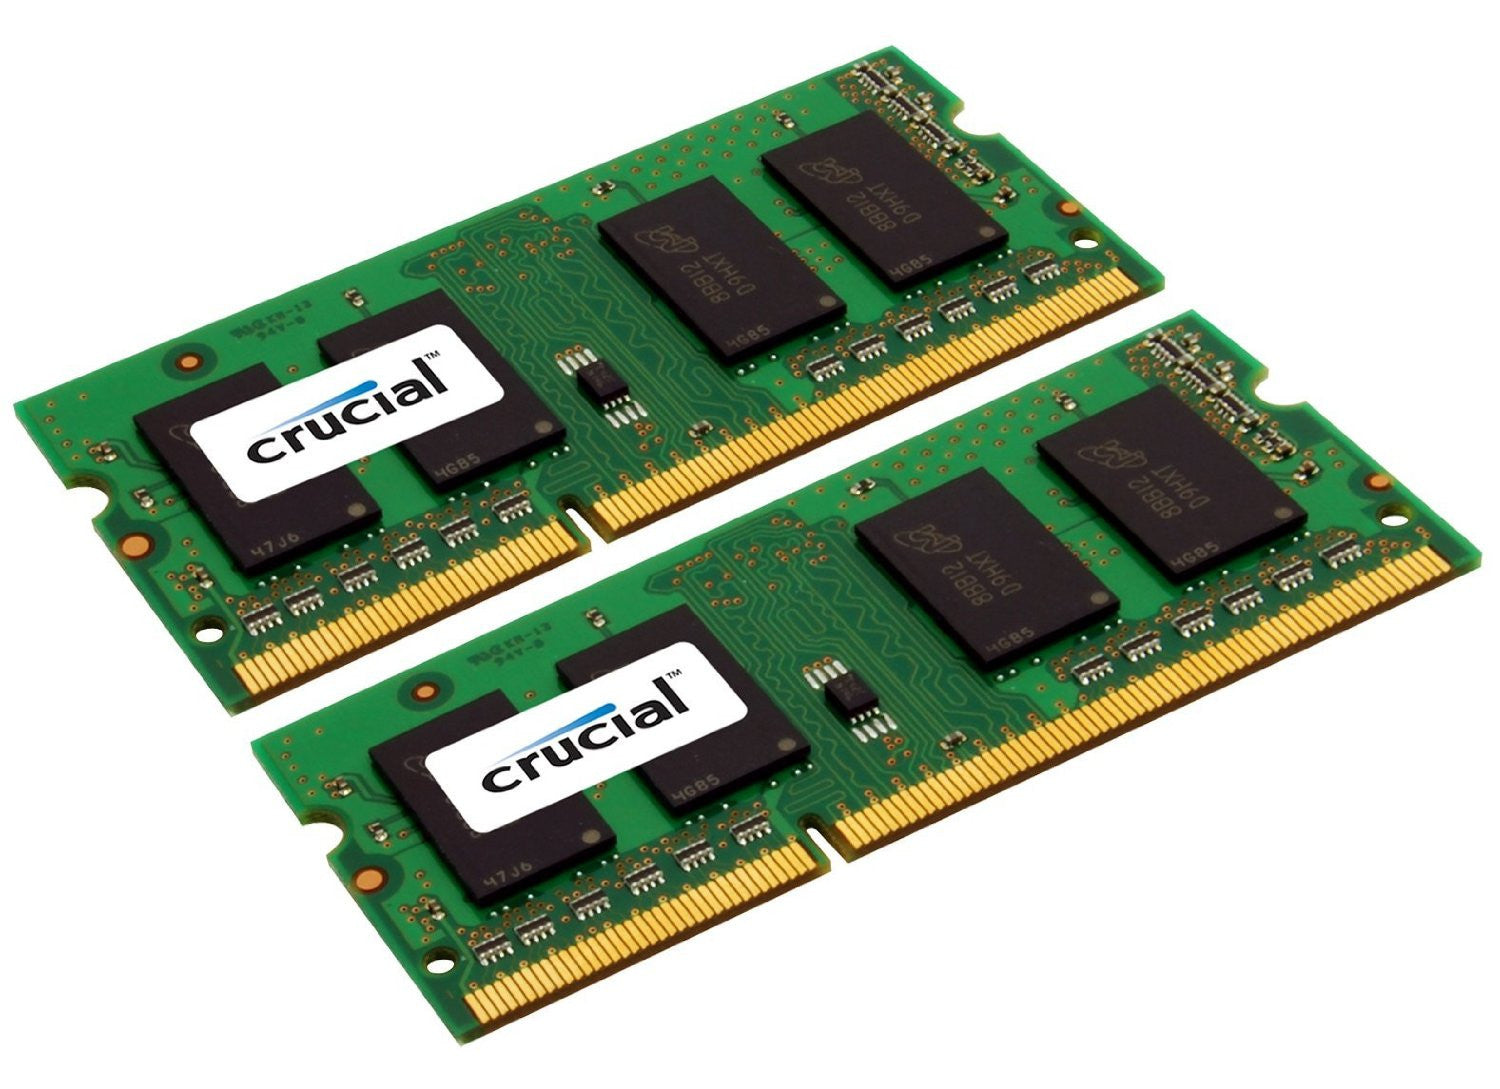 Crucial 4GB DDR3 1066 MT/s (PC3-8500) 204-Pin Memory Modules